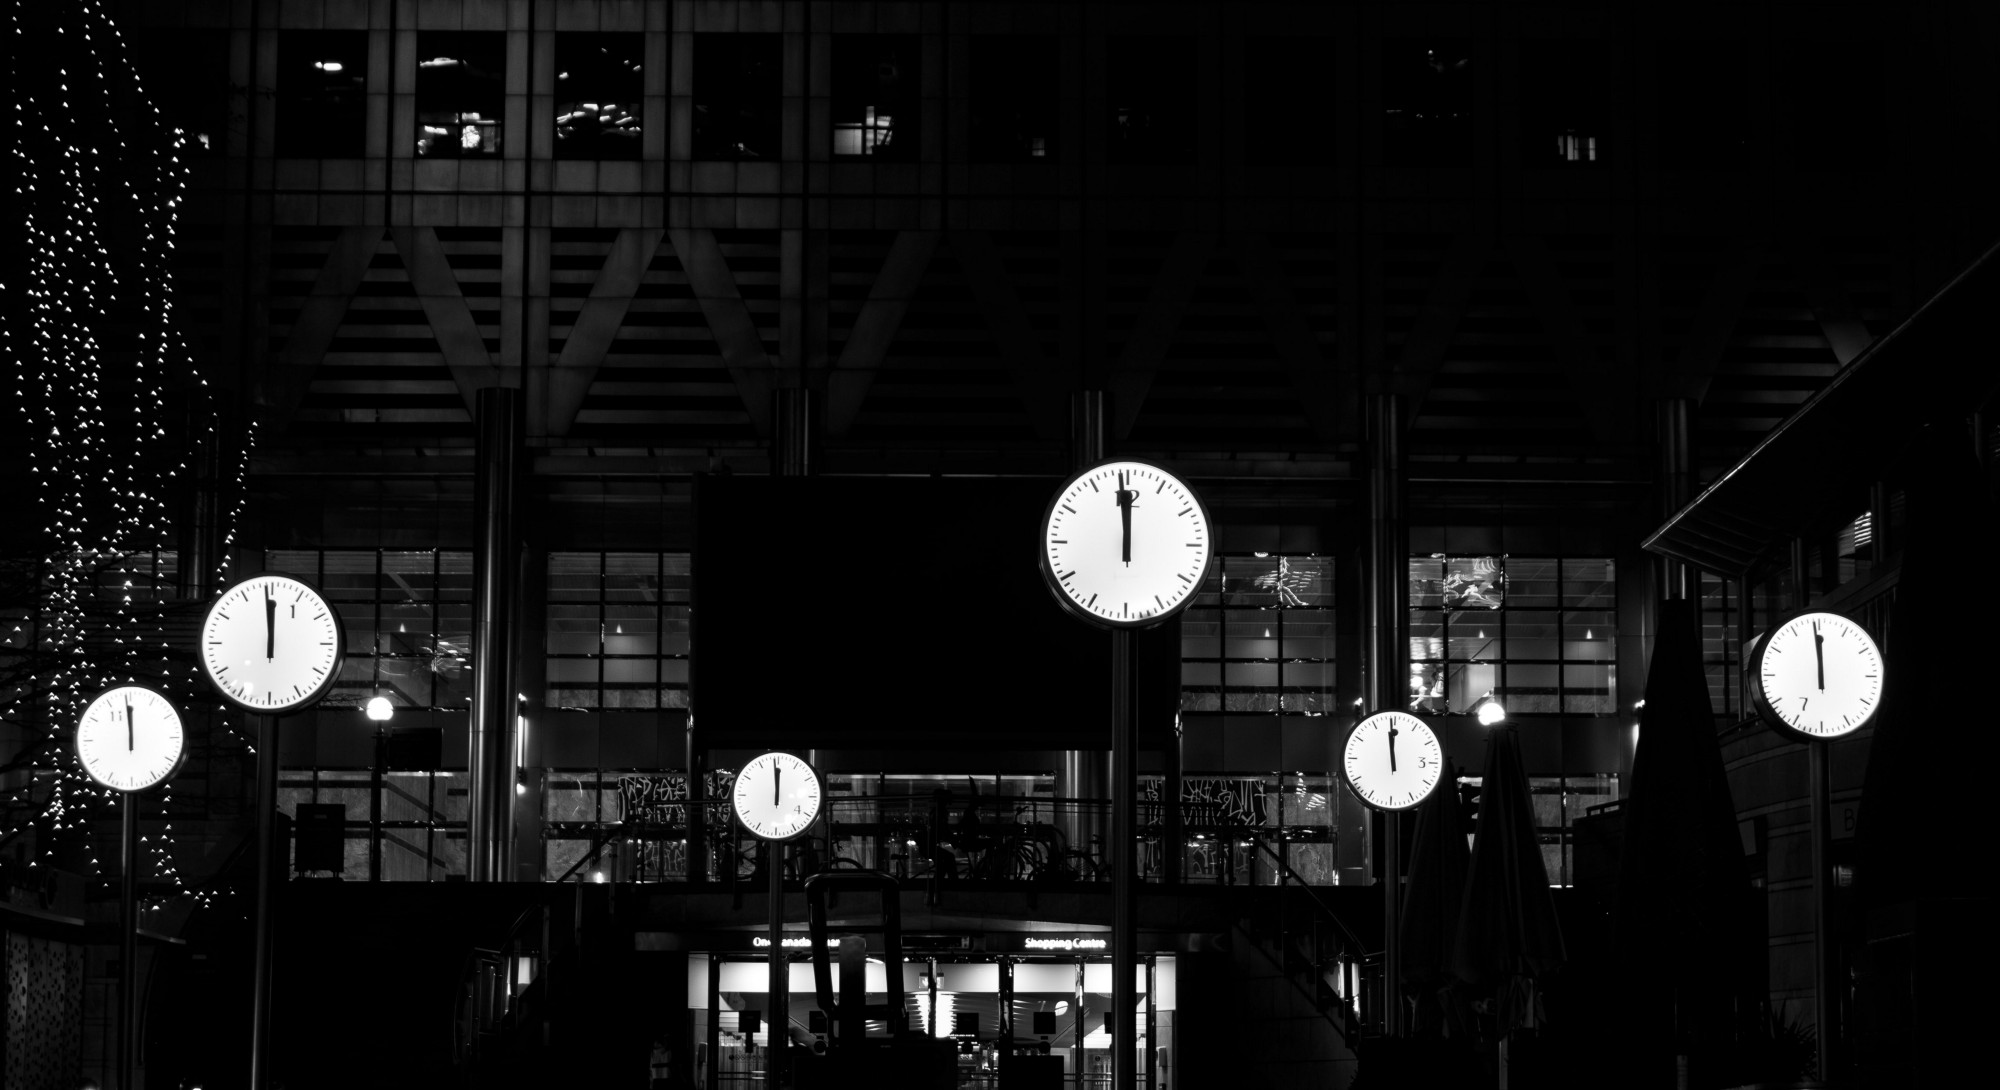 Several clocks in black and white.